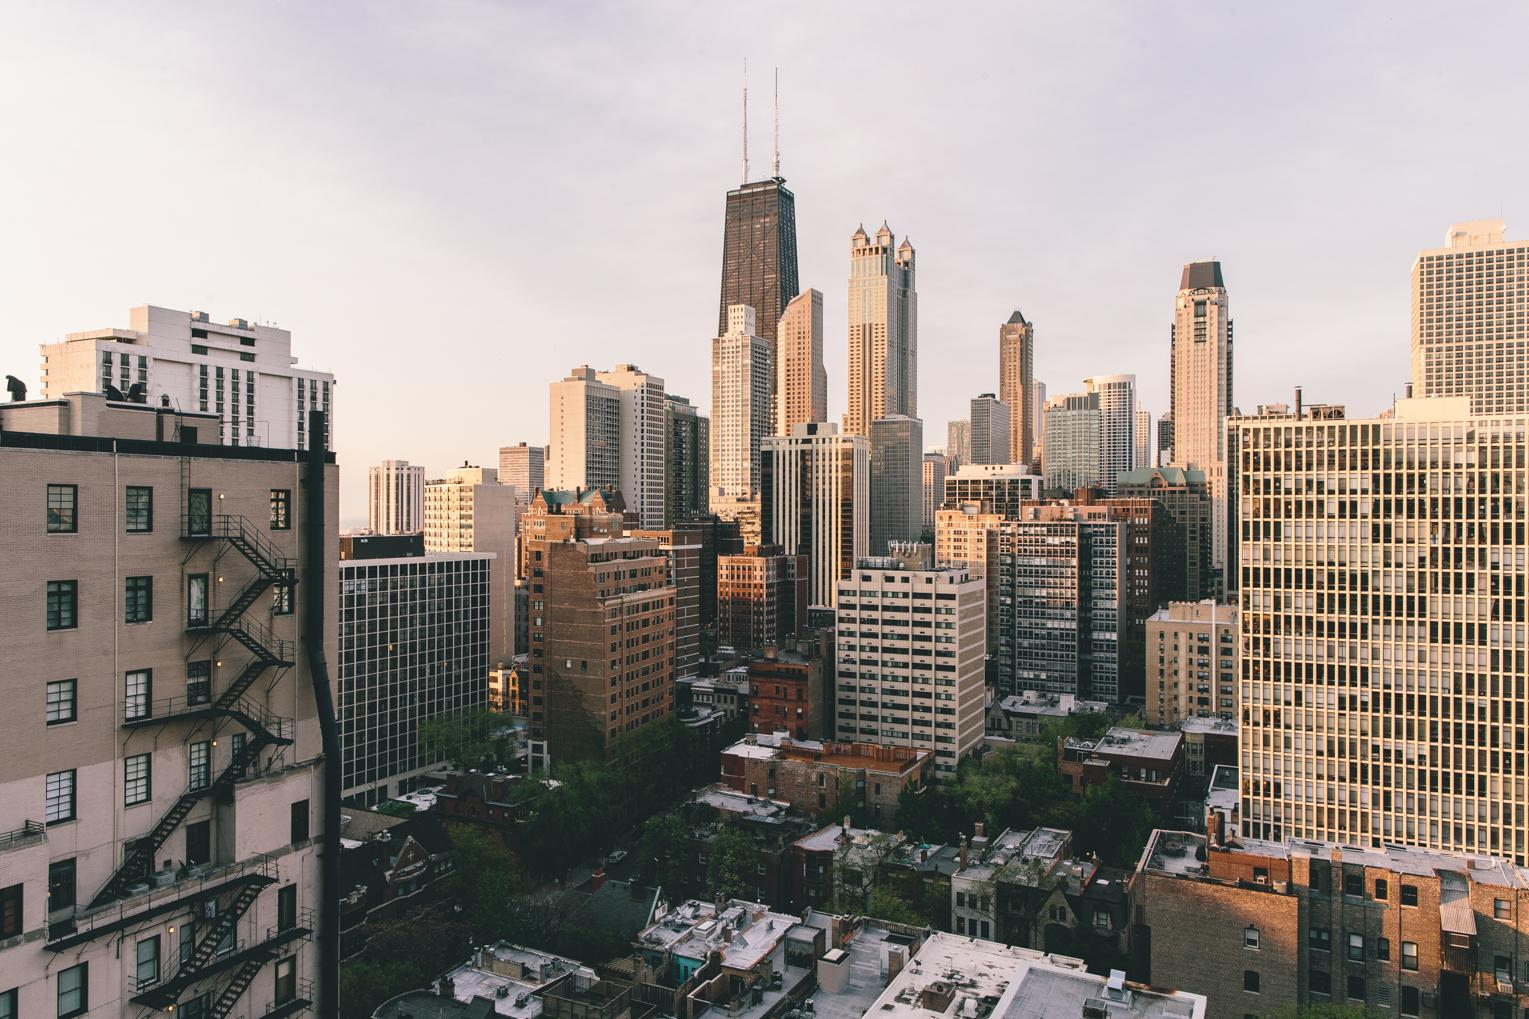 Welcome to Chicago. Sincerely, trashhand - image 3 - student project